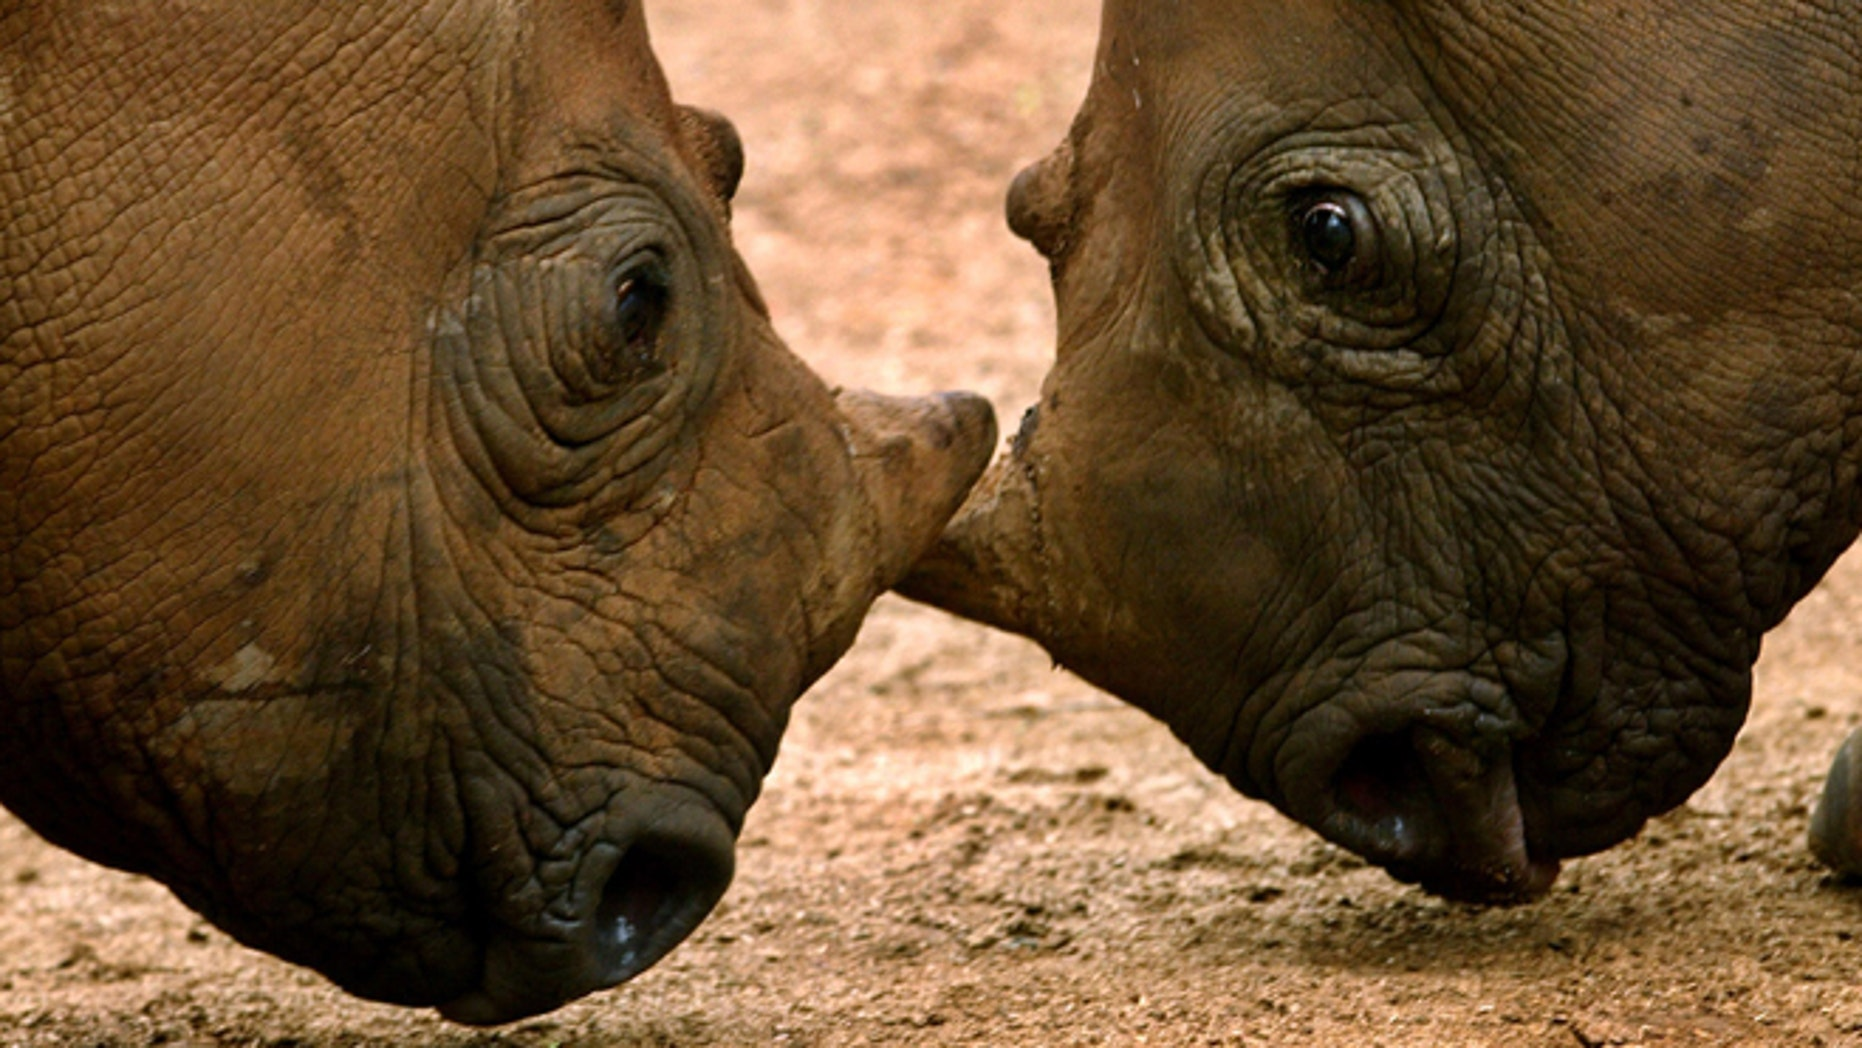 FILE - In this undated photo supplied by International Fund For Animal Welafre (IFAW), orphaned black rhinos square up after their release into a holding boma at Addo National Park, 50 miles north-east of Port Elizabeth, South Africa after each was abandoned at birth.